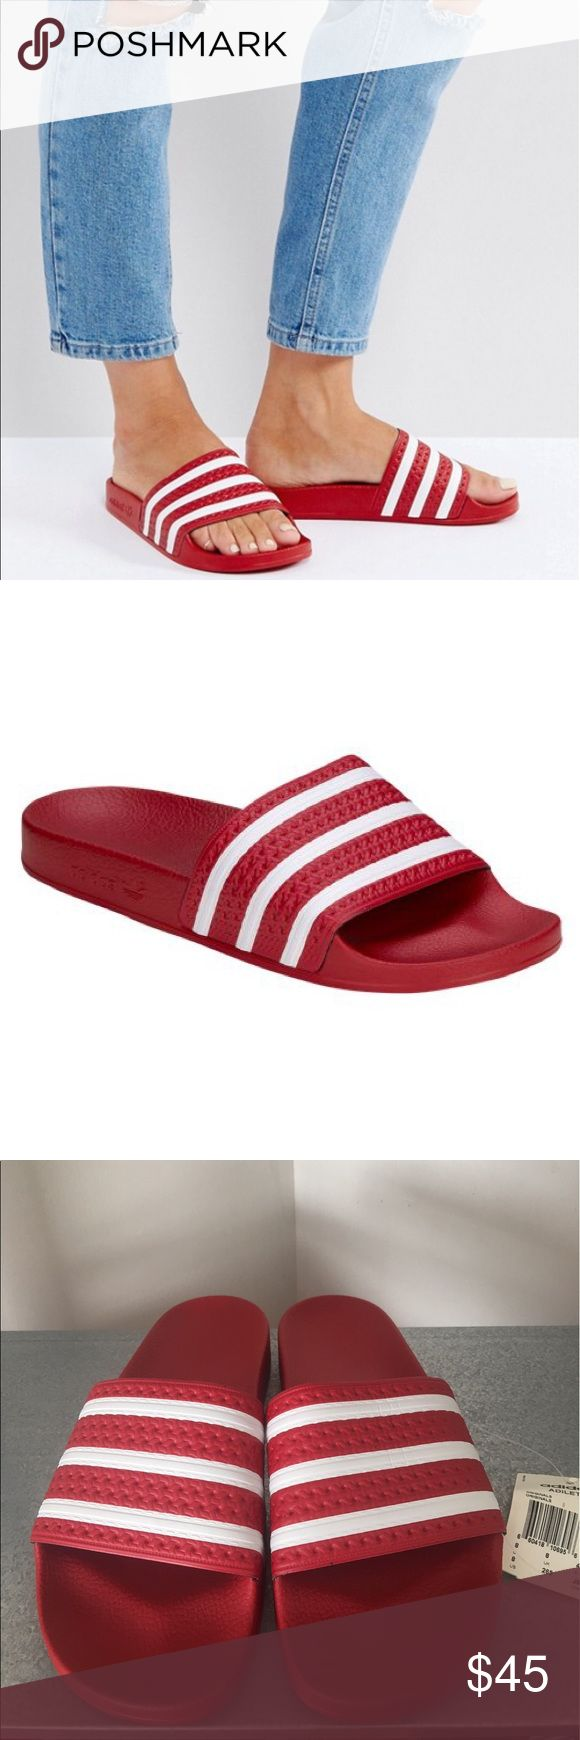 NWOB Adidas Original Adilette Slides Red M 8 W 10 NEW Adidas ADILETTE Slides Sandals Mens Red/White  288193  Purchased from footlocker last year never wore, no longer have box. Still has tags, condition is NEW the left foot does have a very faint crease a